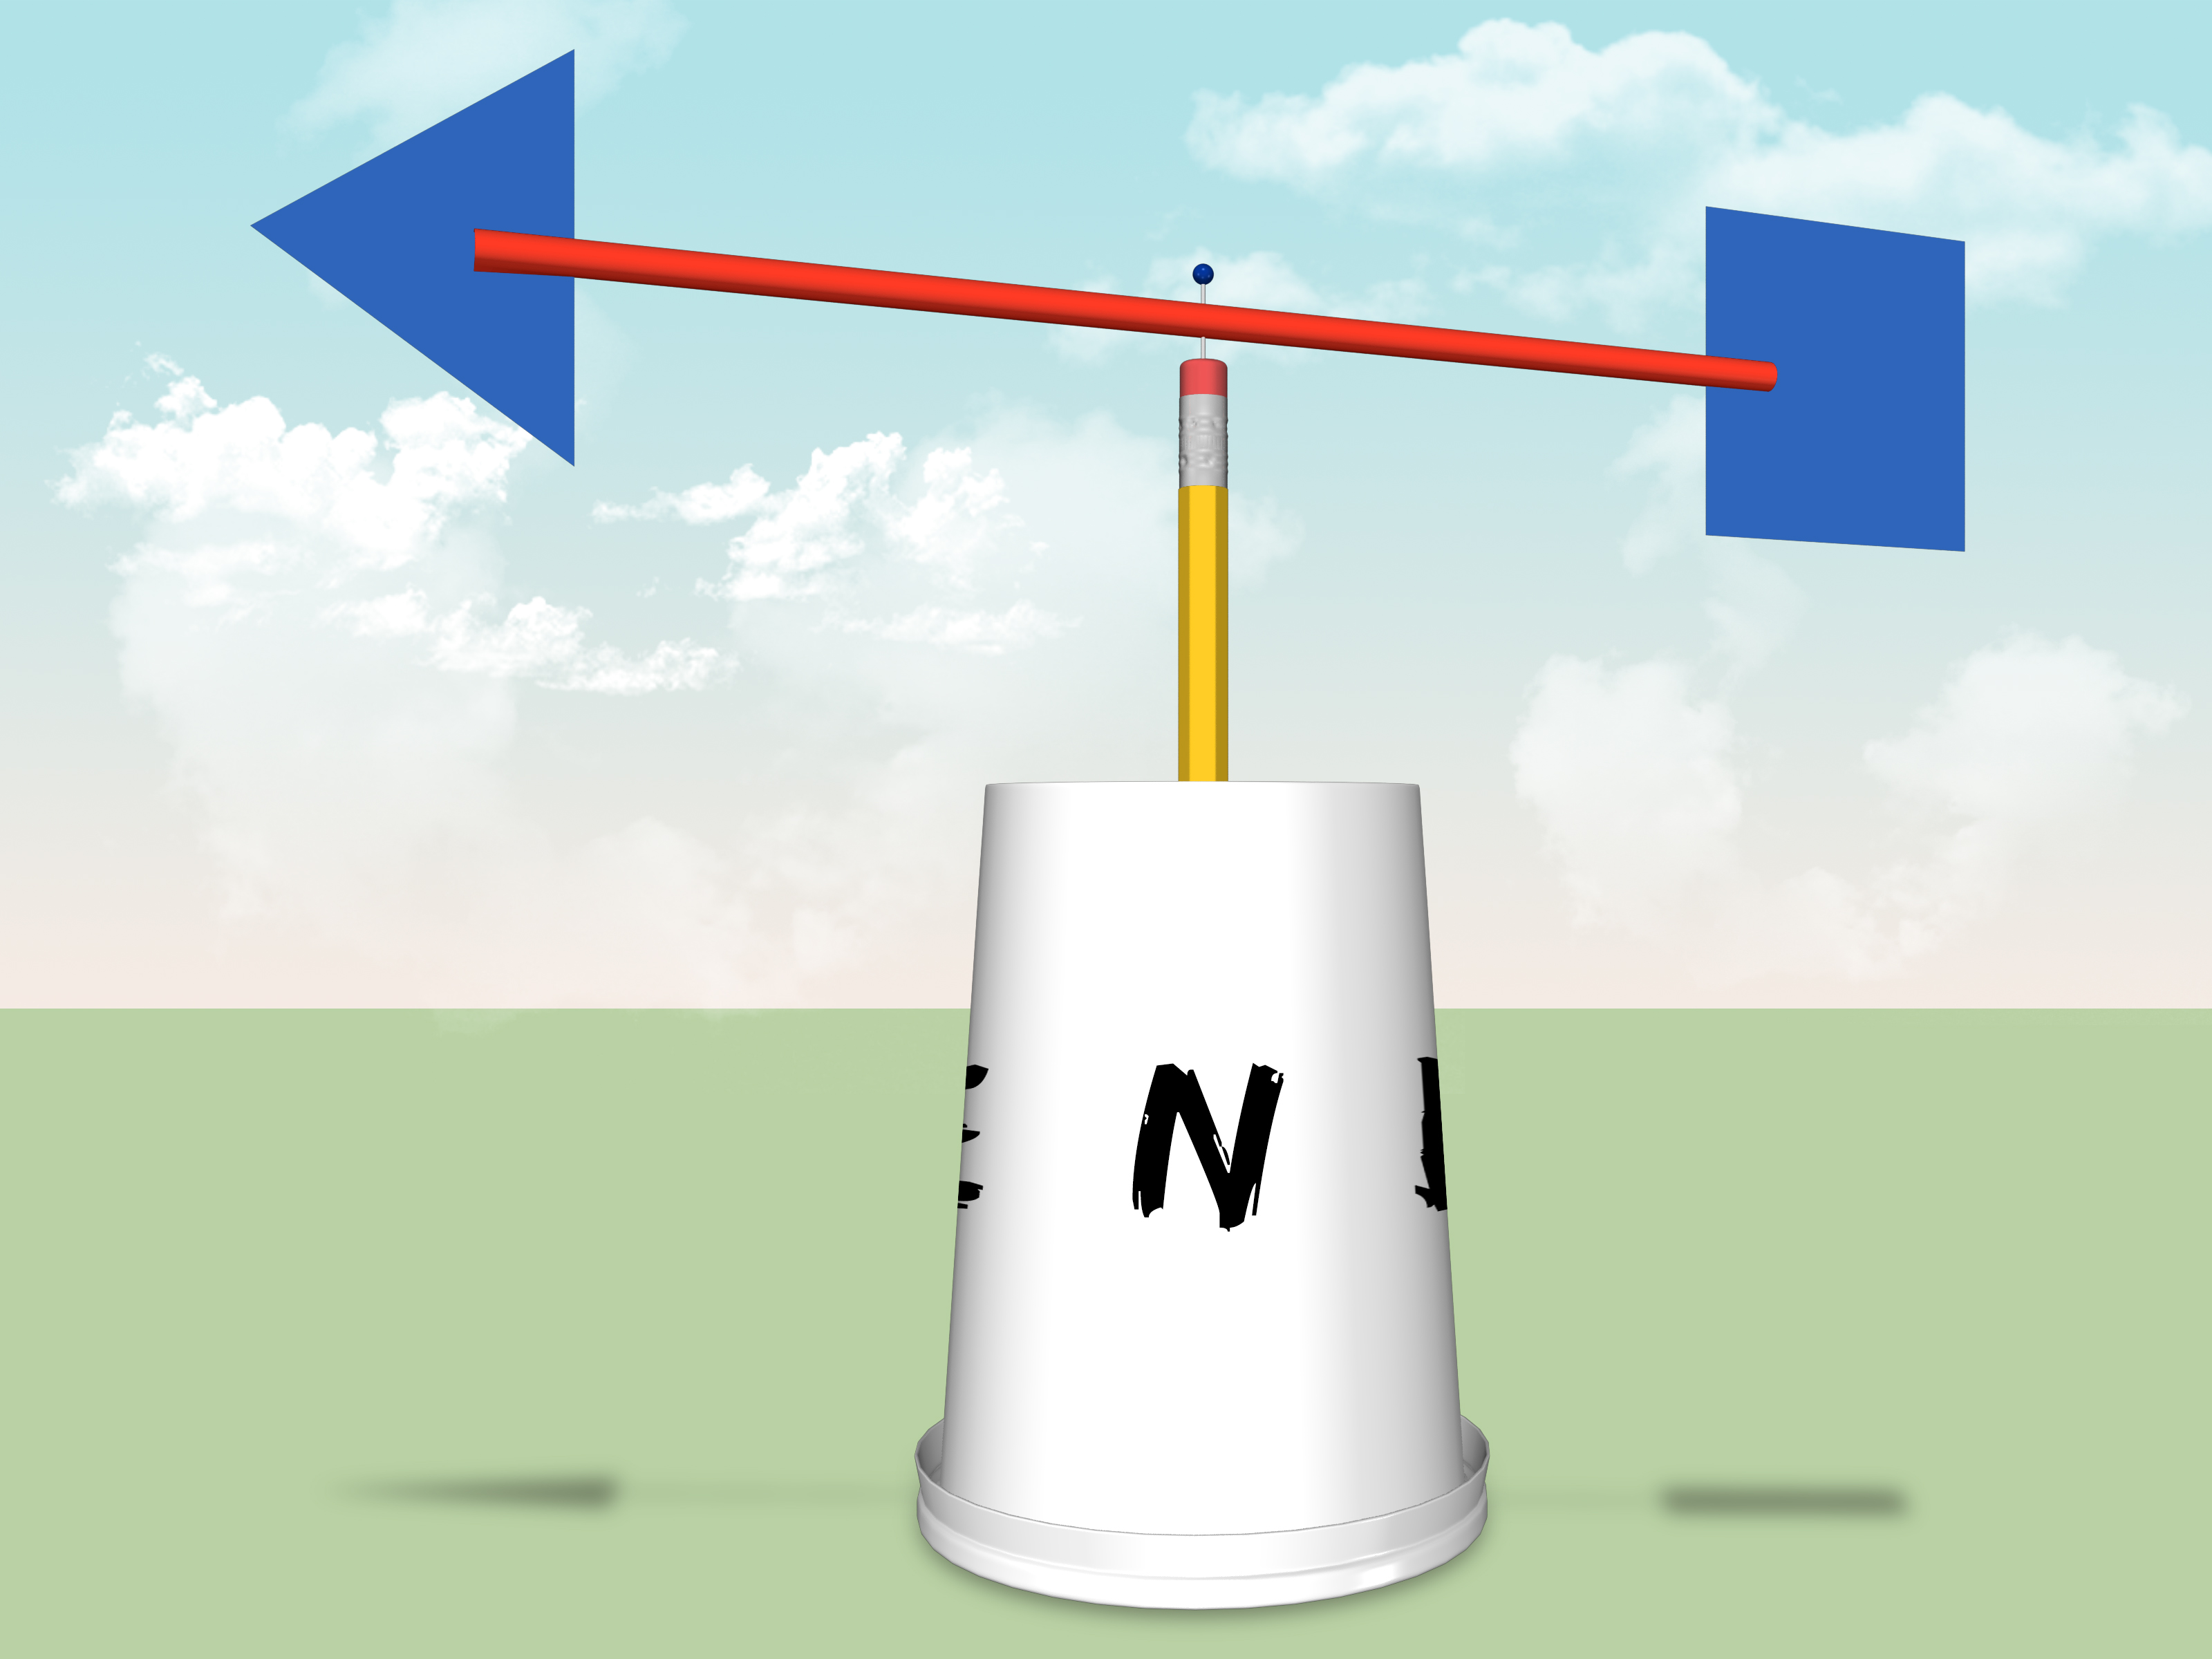 How To Make A Simple And Homemade Wind Vane